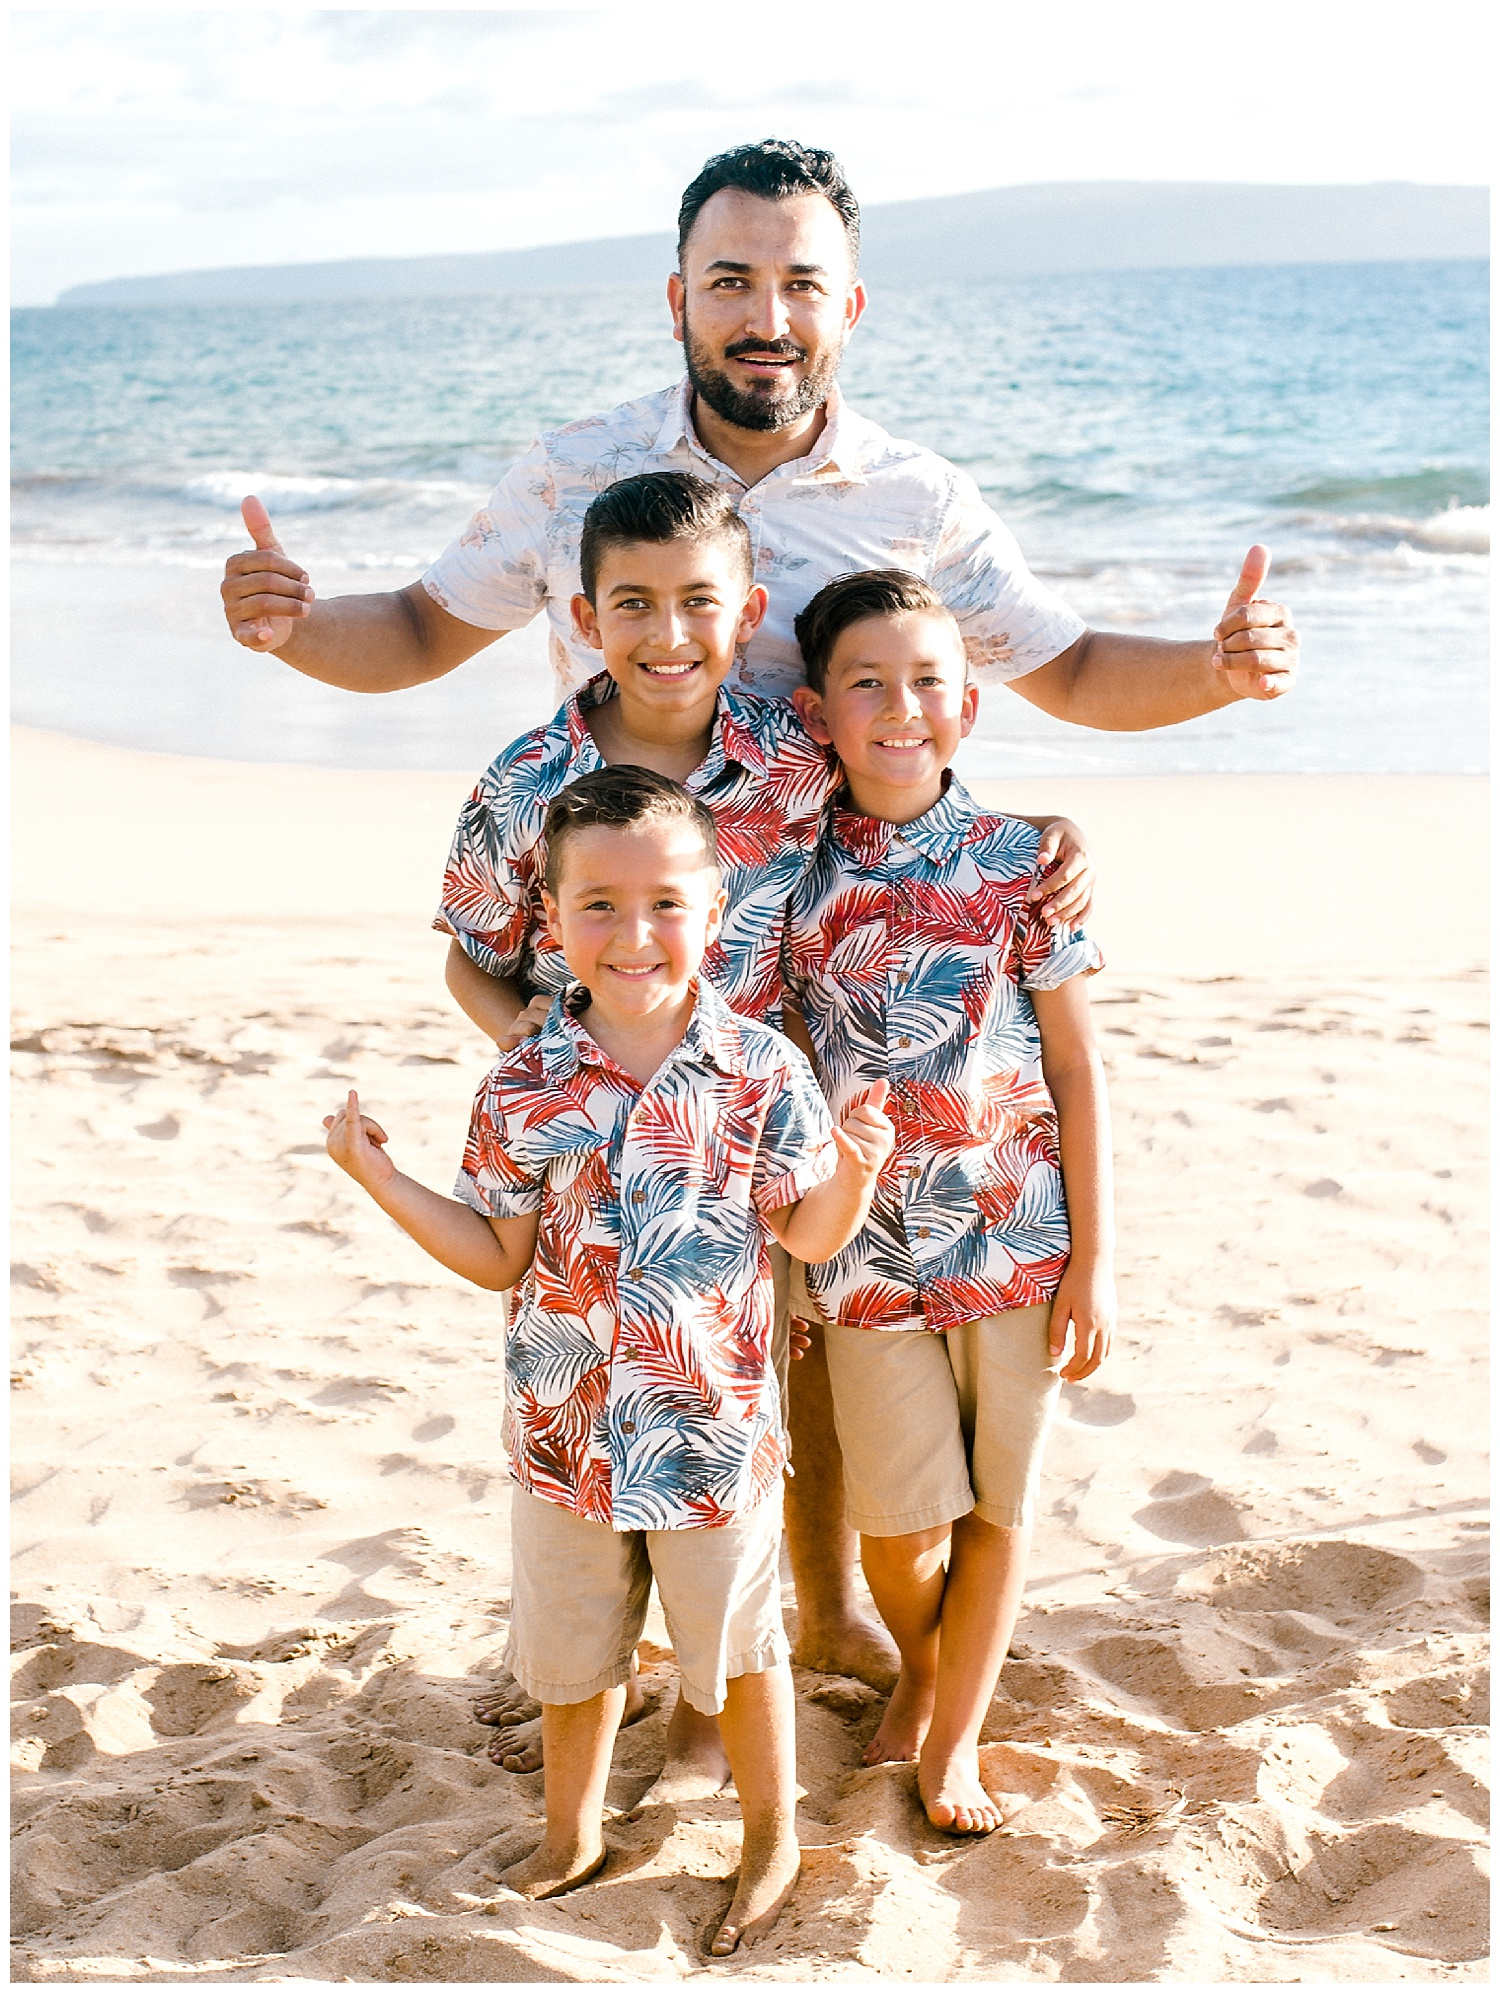 Maui-Family-Photography-Po'olenalena-Beach-Maui_0009.jpg